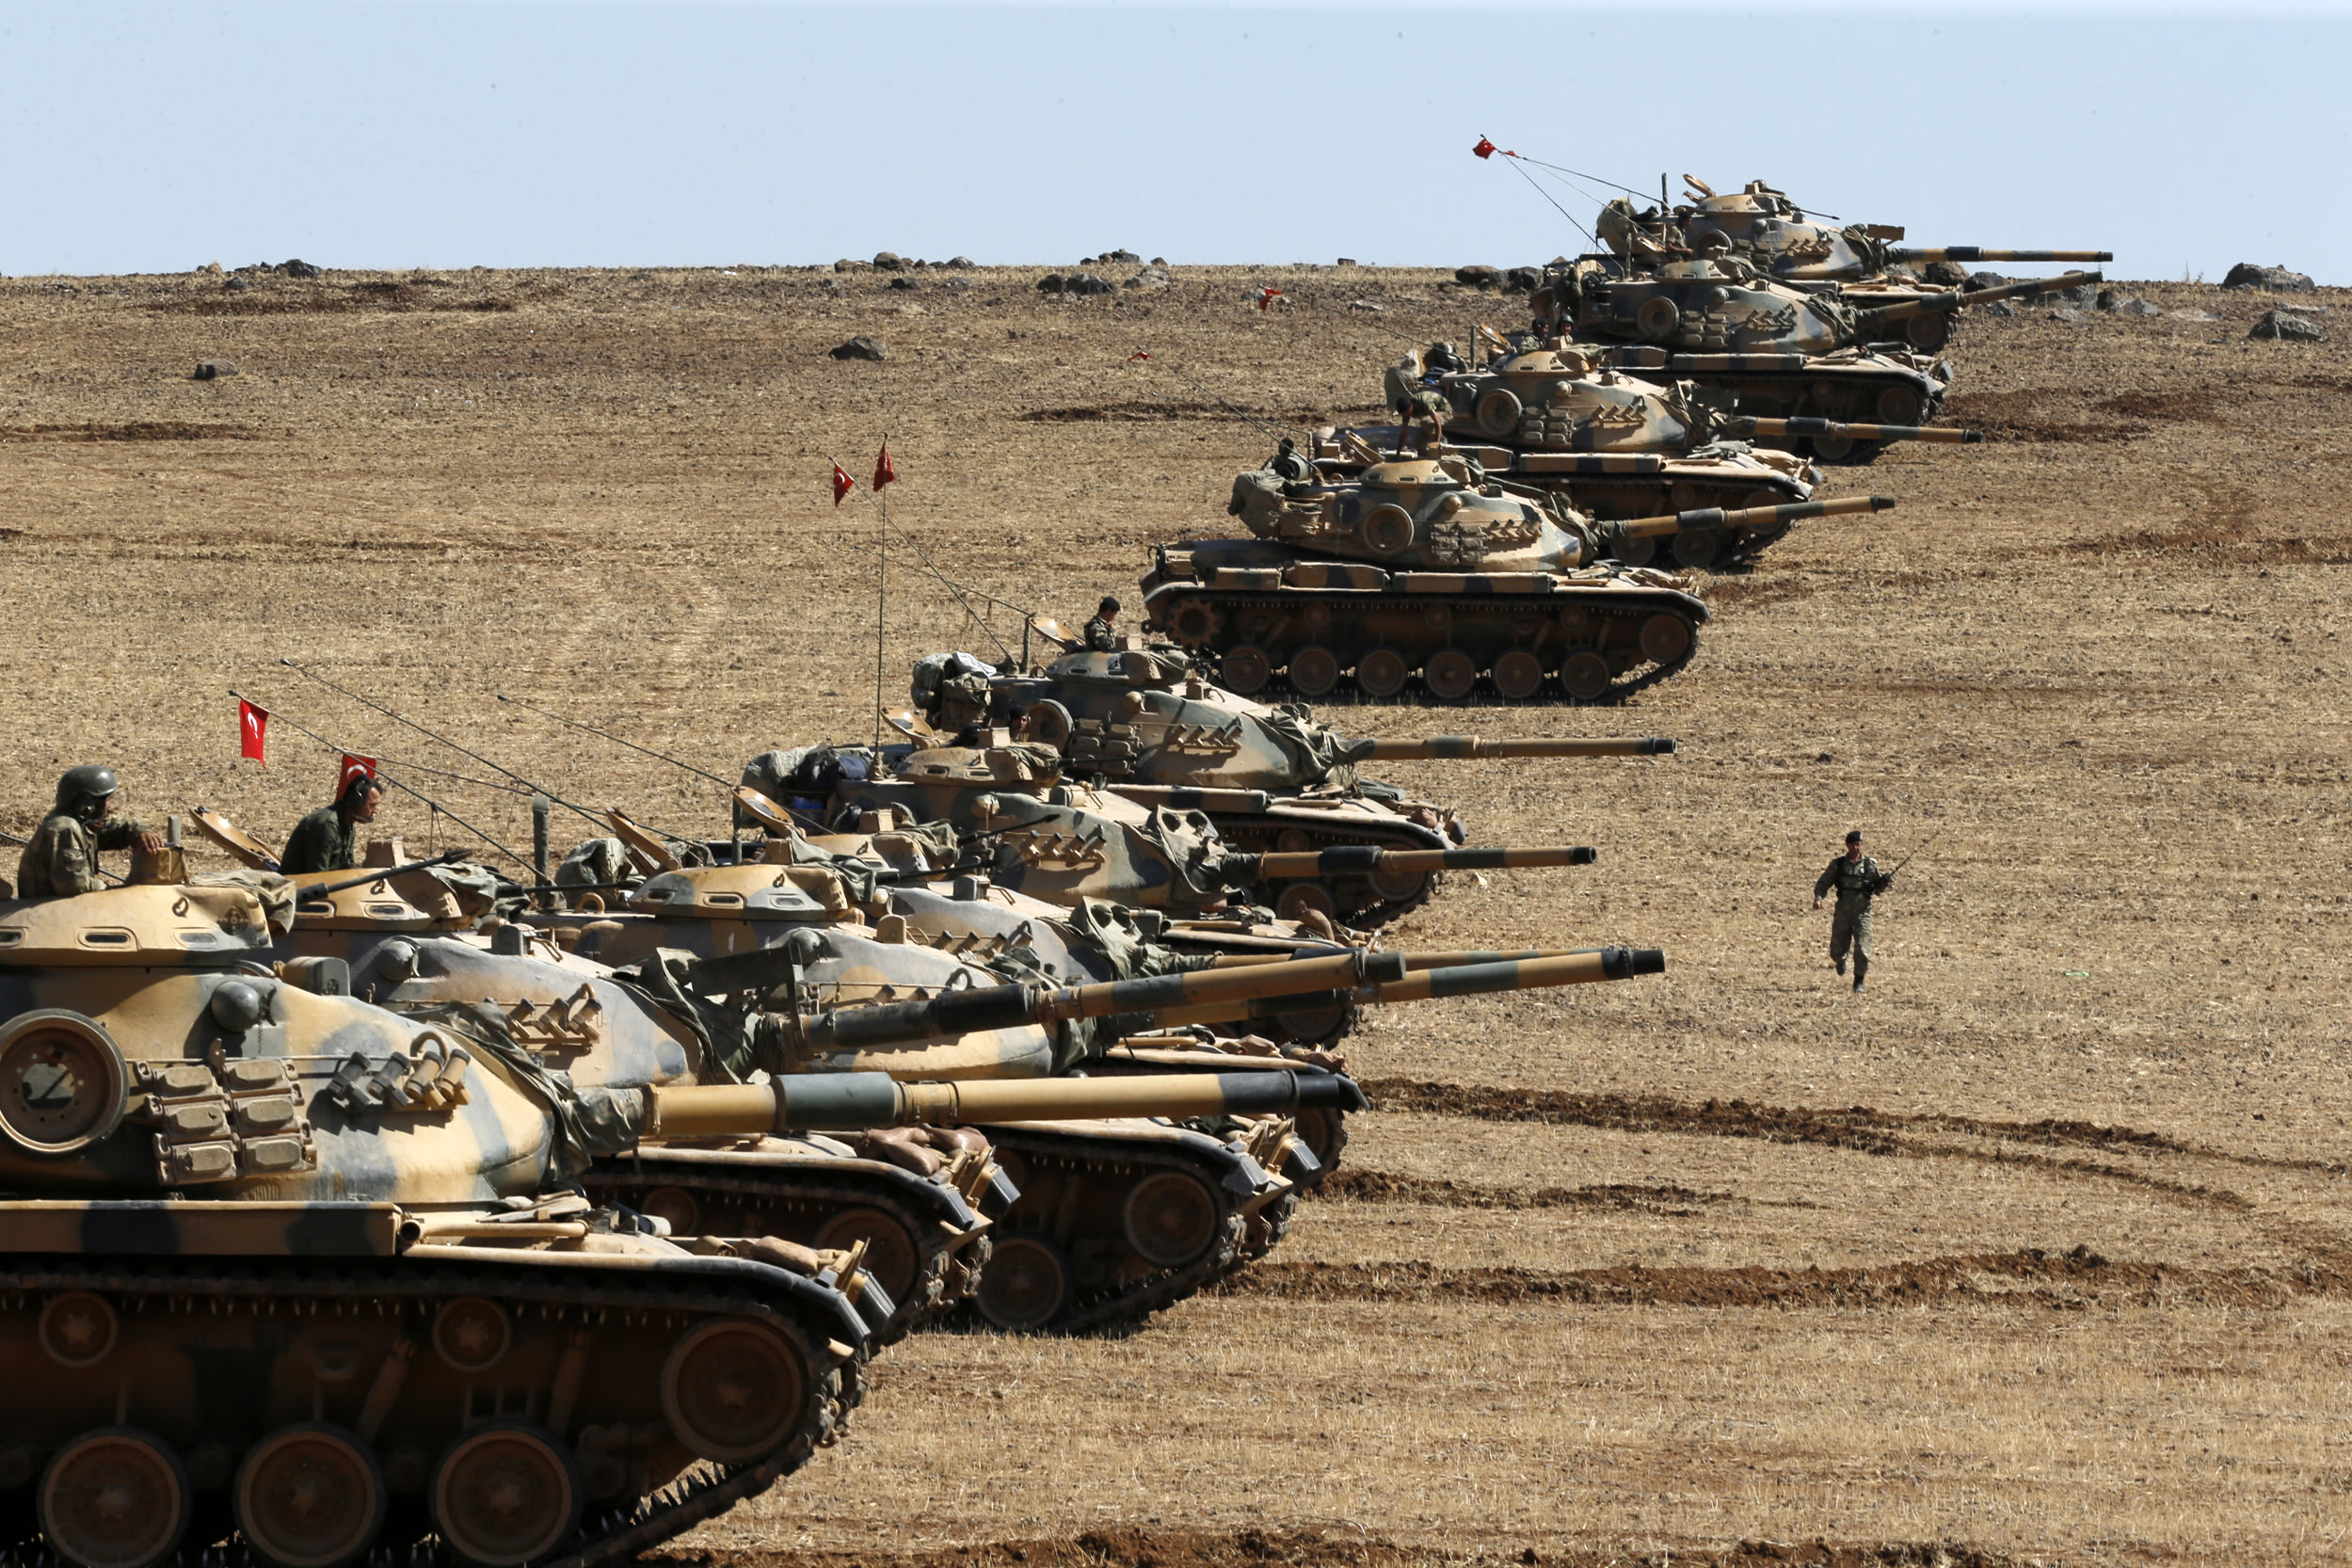 Turkey is 'making NATO very uncomfortable'